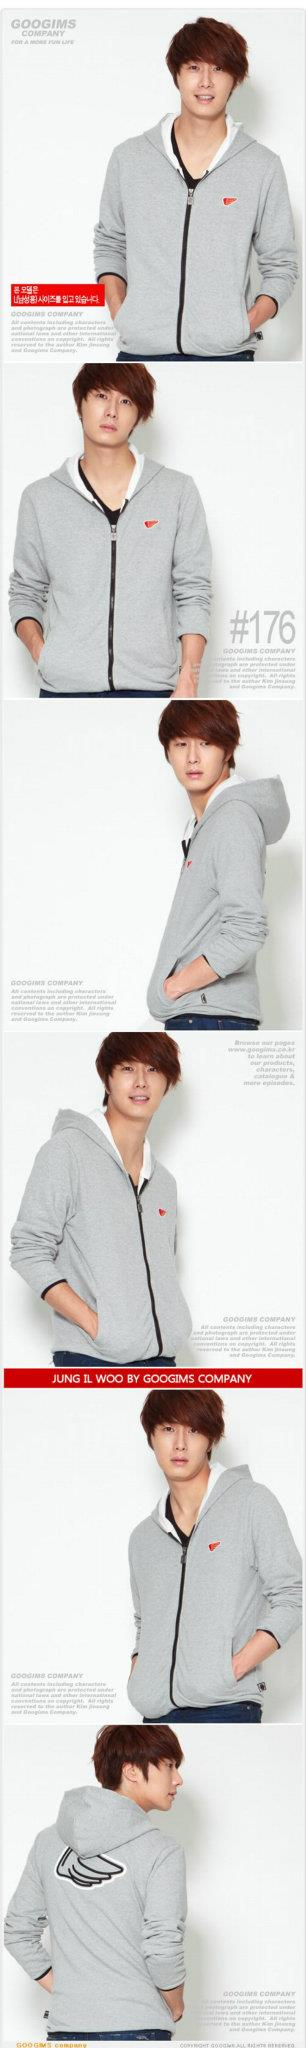 2011 10 Jung II-woo for Googims. Part 3 00005